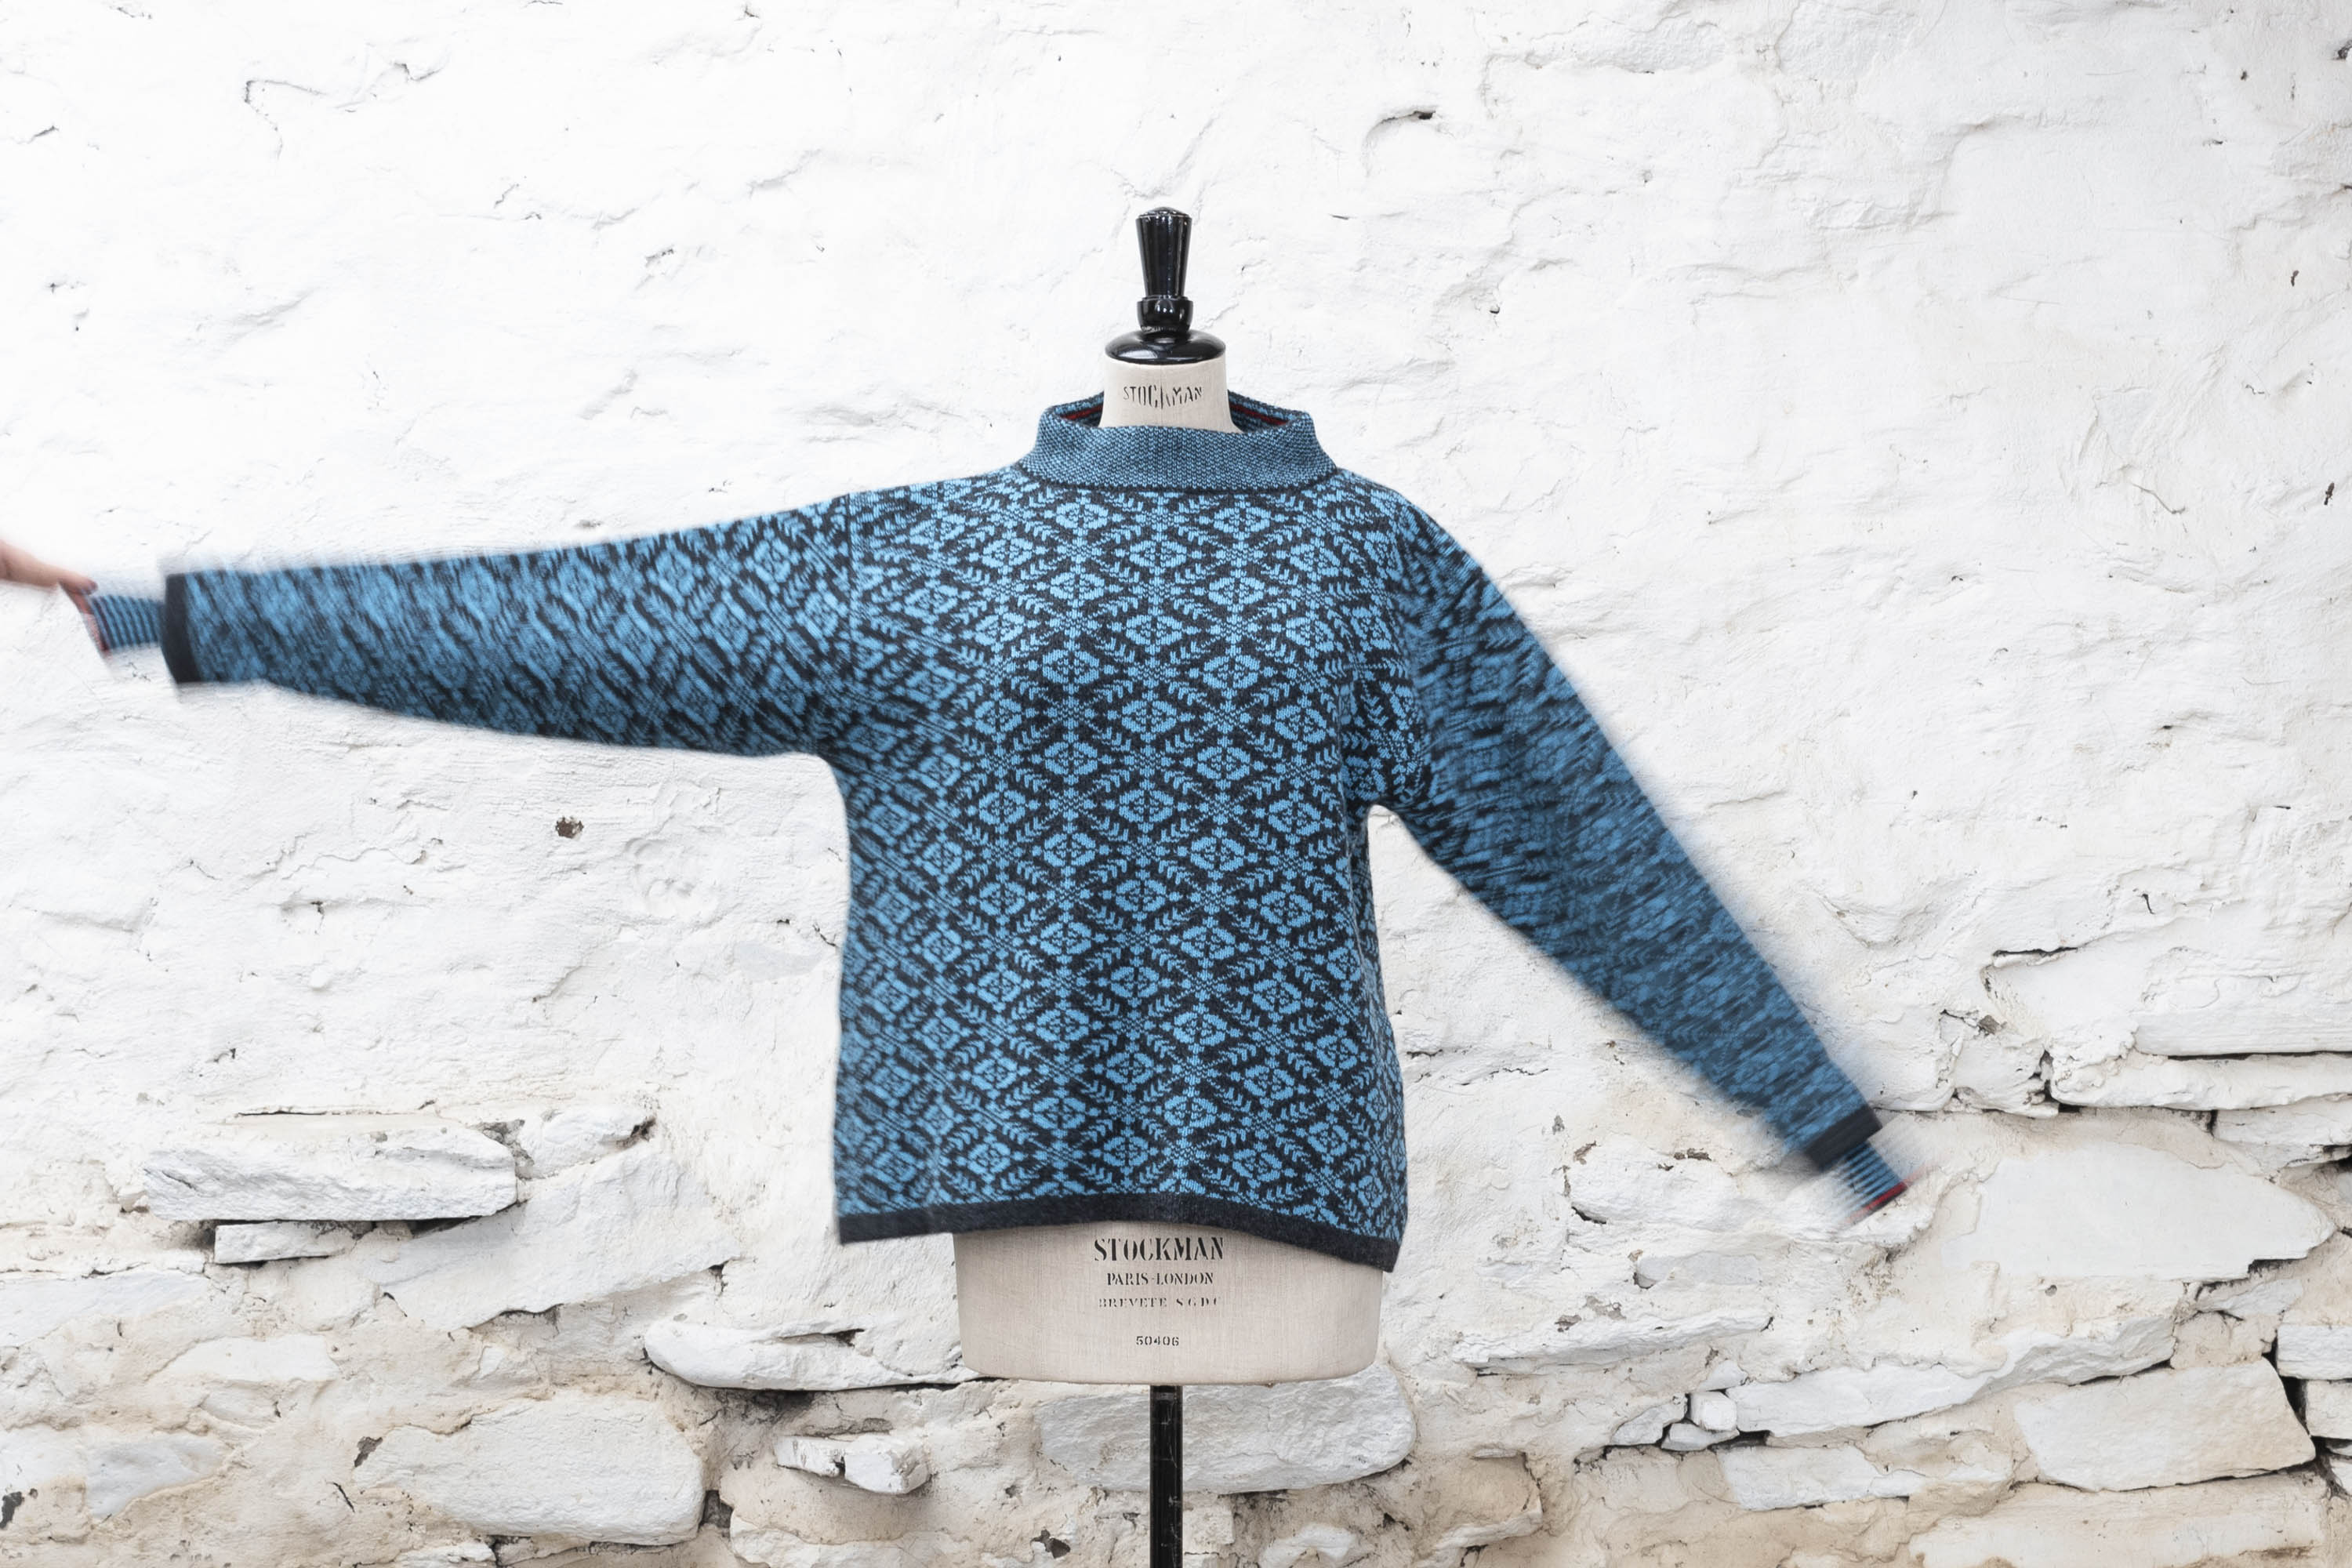 Fair Isle jumper in a bright turquoise and navy. Front view against a white-washed wall, with the right arm held up.